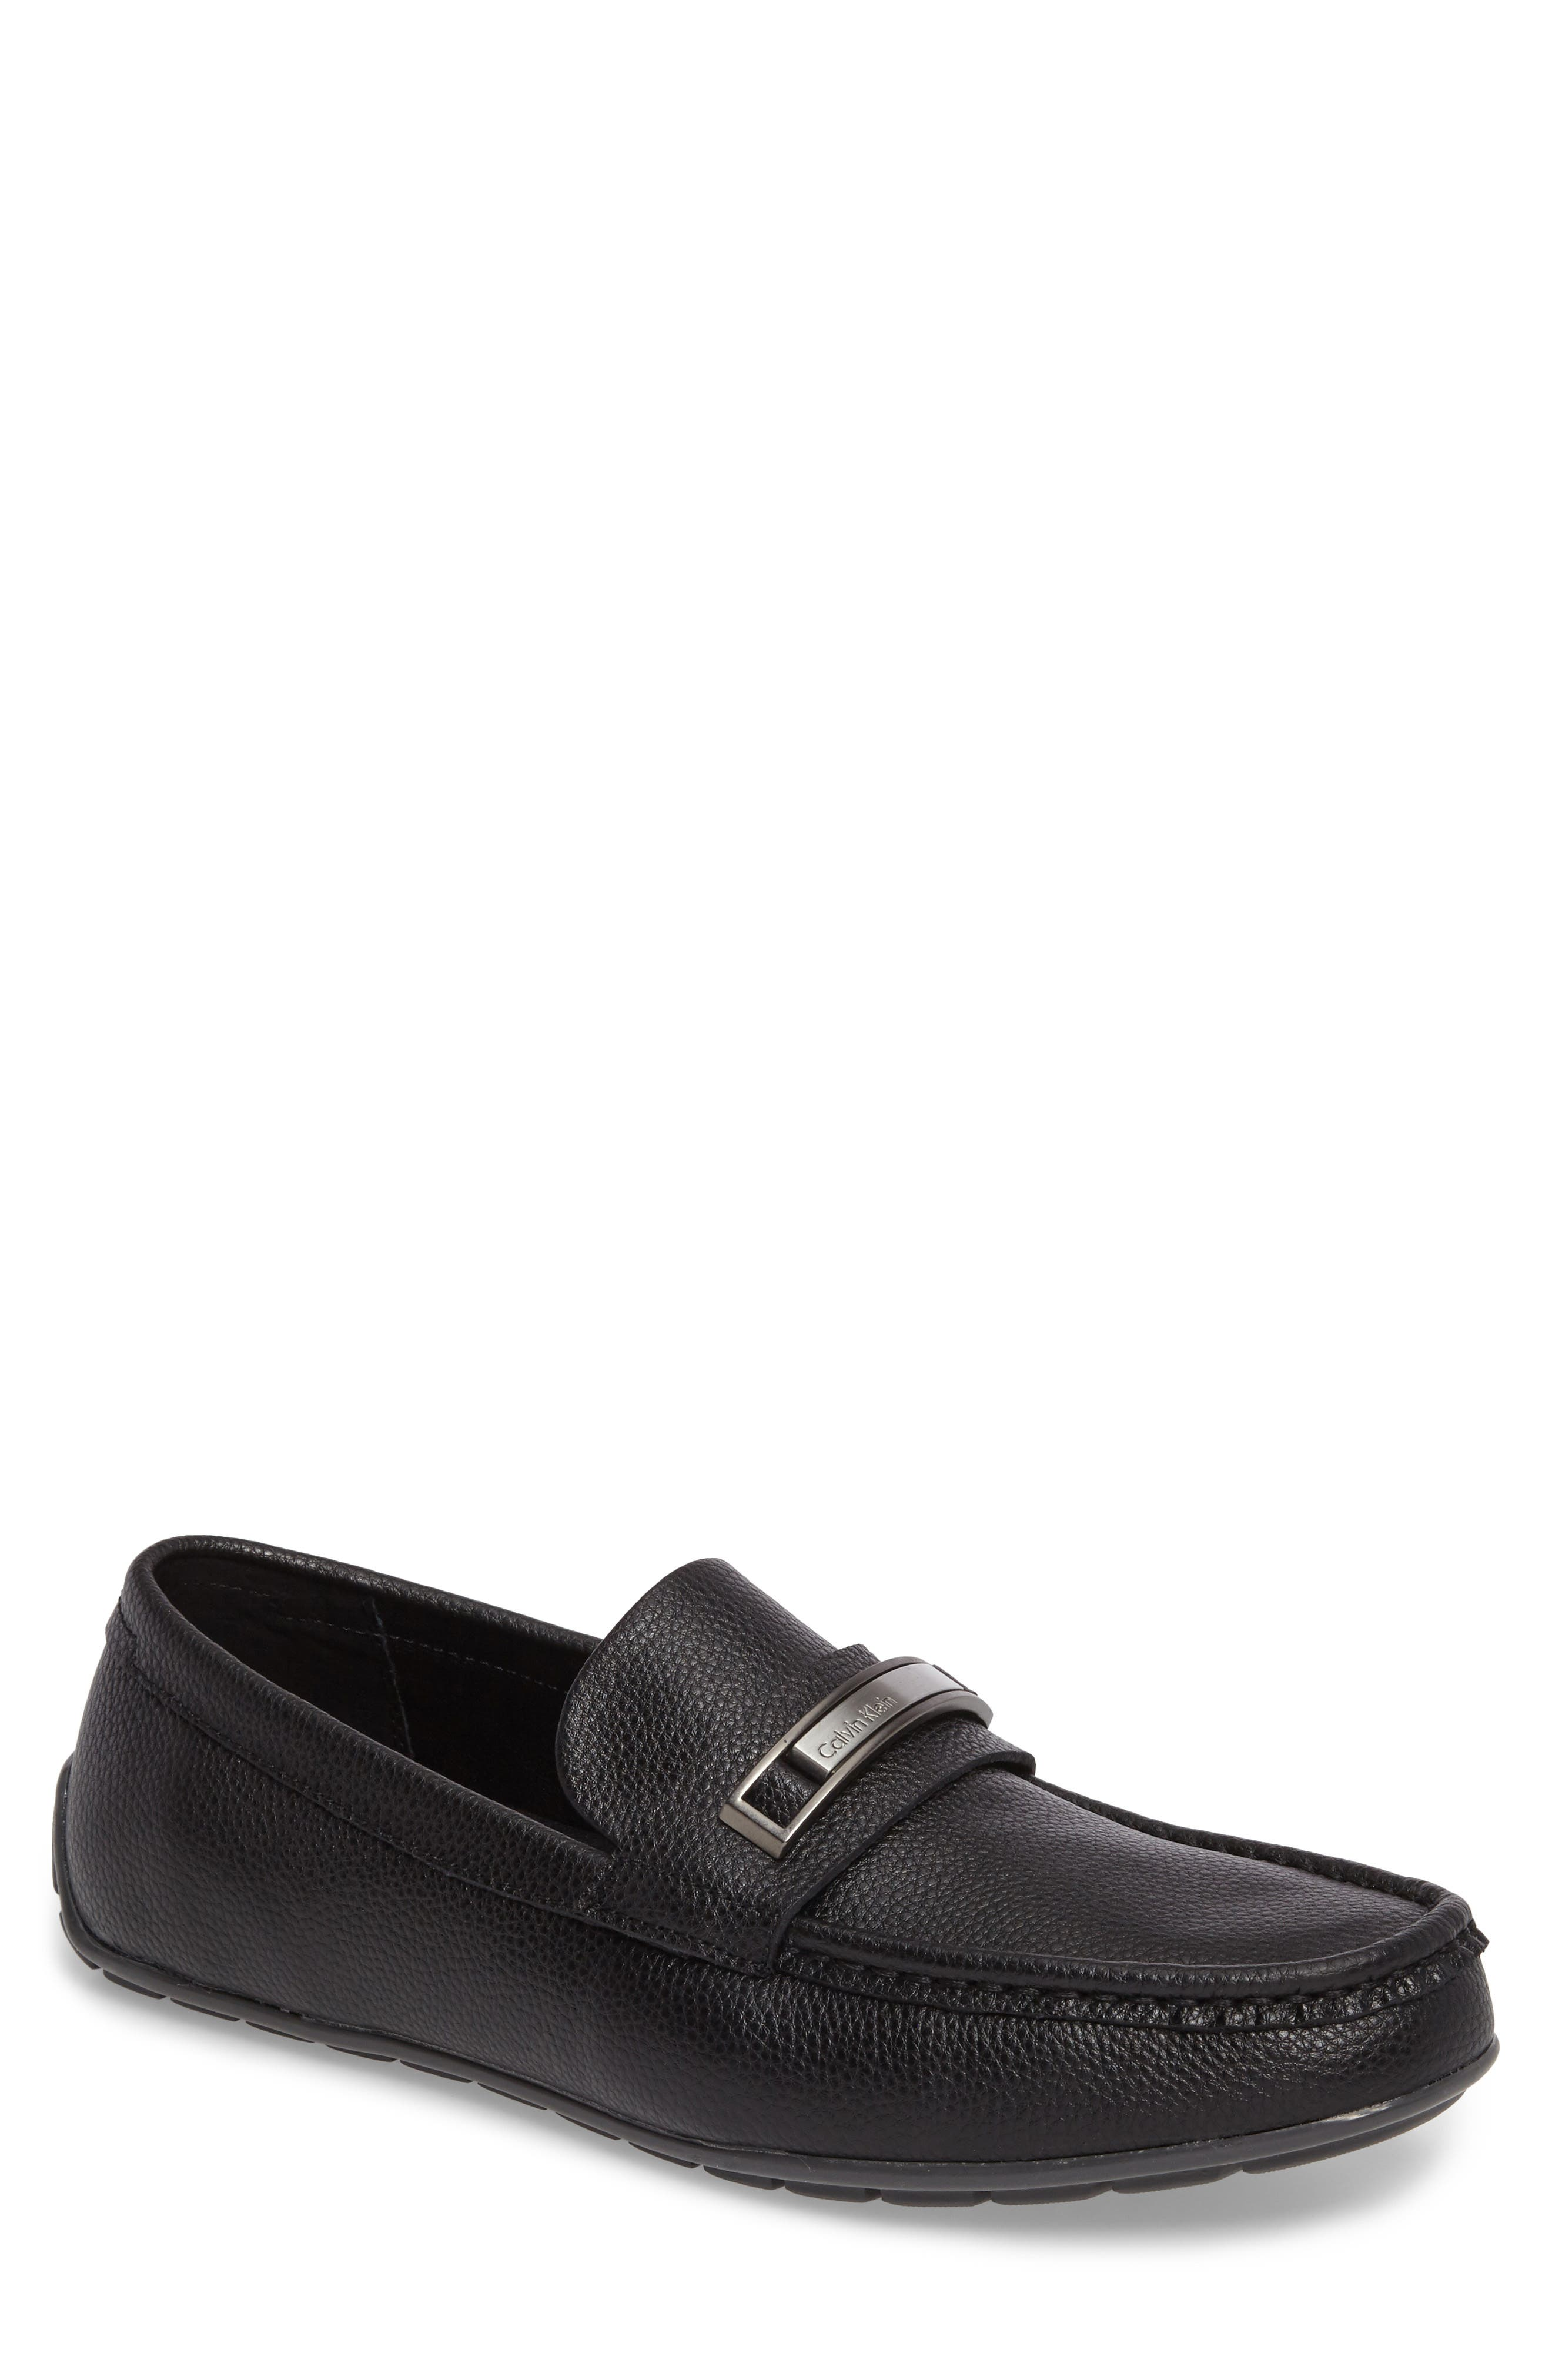 Irving Driving Loafer,                         Main,                         color, 001